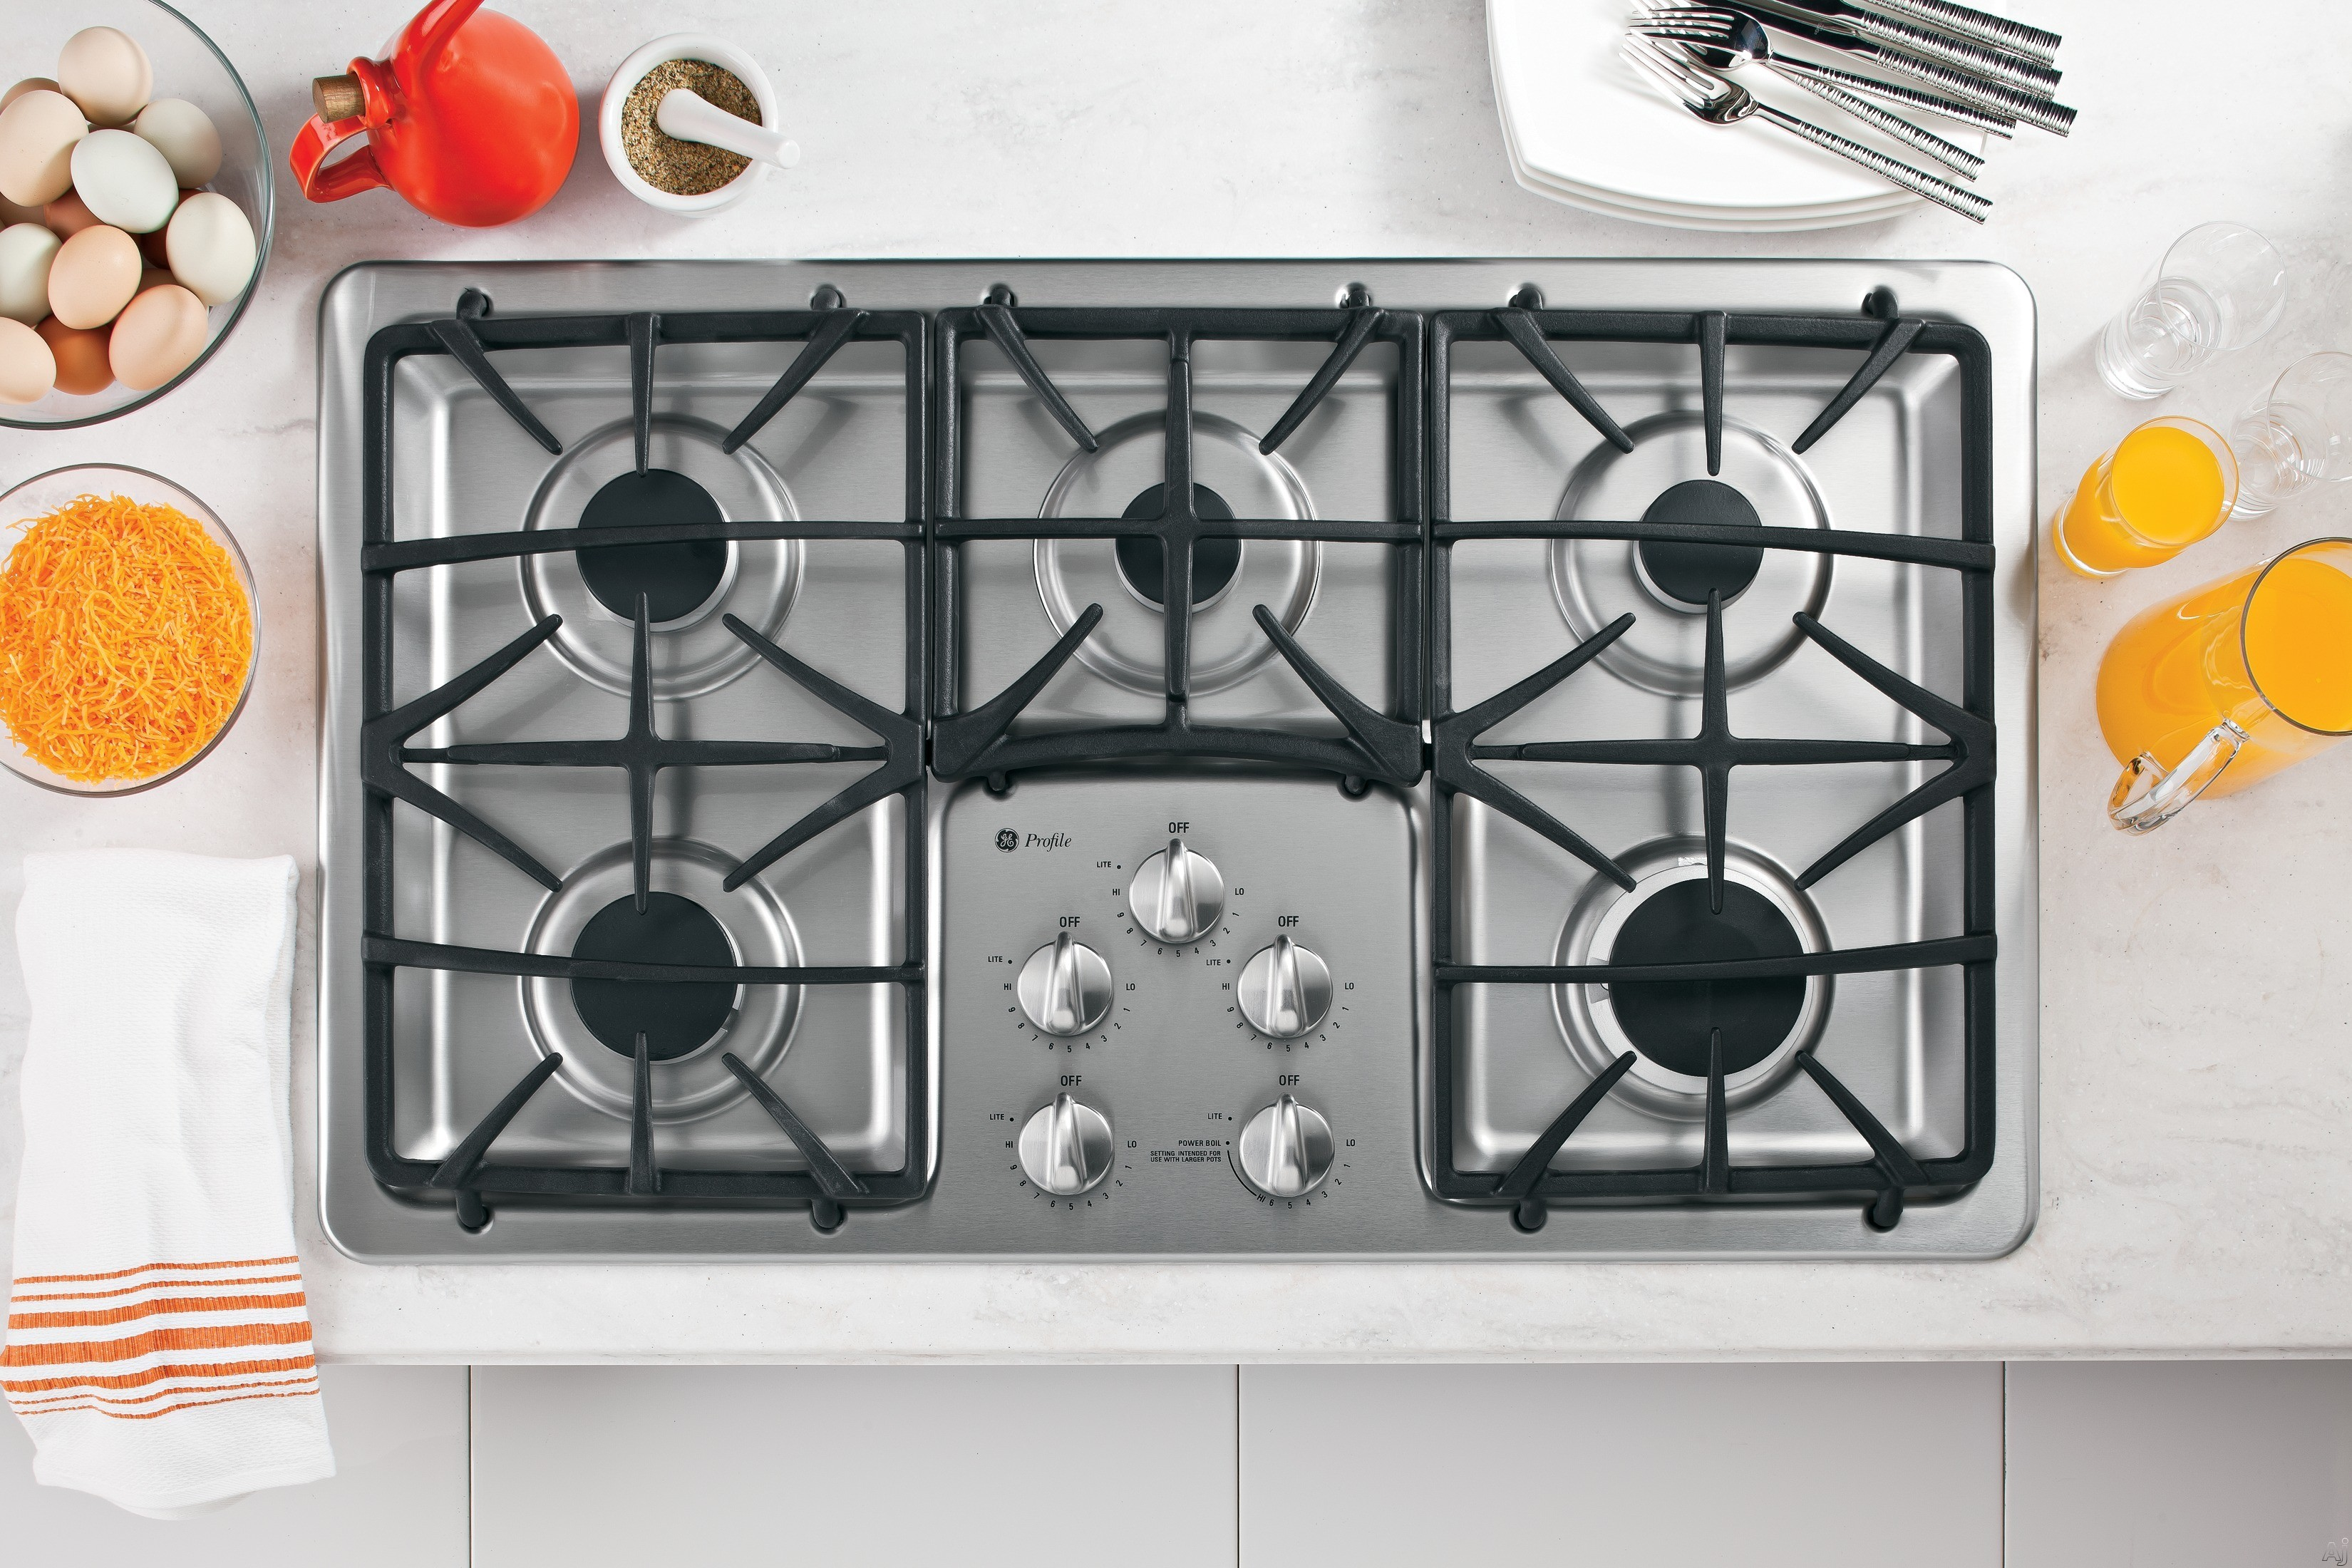 GE Profile PGP966SETSS 36 Inch Gas Cooktop with 5 Sealed Burners, PowerBoil 15,000 BTU Burner, Precise Simmer Burner, Dishwasher-Safe Deluxe Matte-Cast Grates, ADA Compliant and GE Fits! Guarantee: Stainless Steel